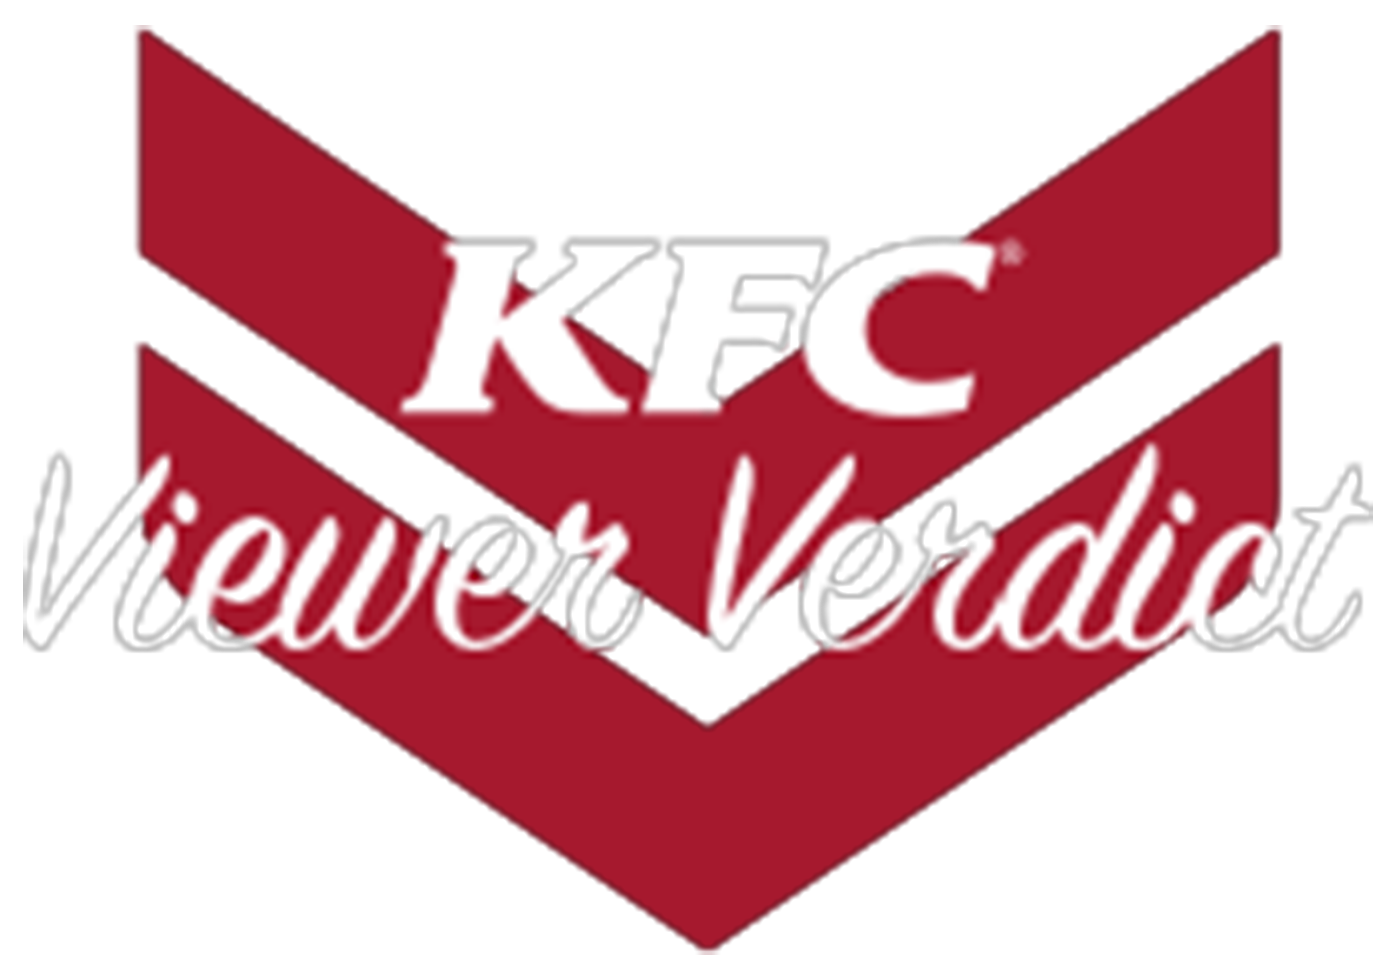 KFC Viewer Verdict